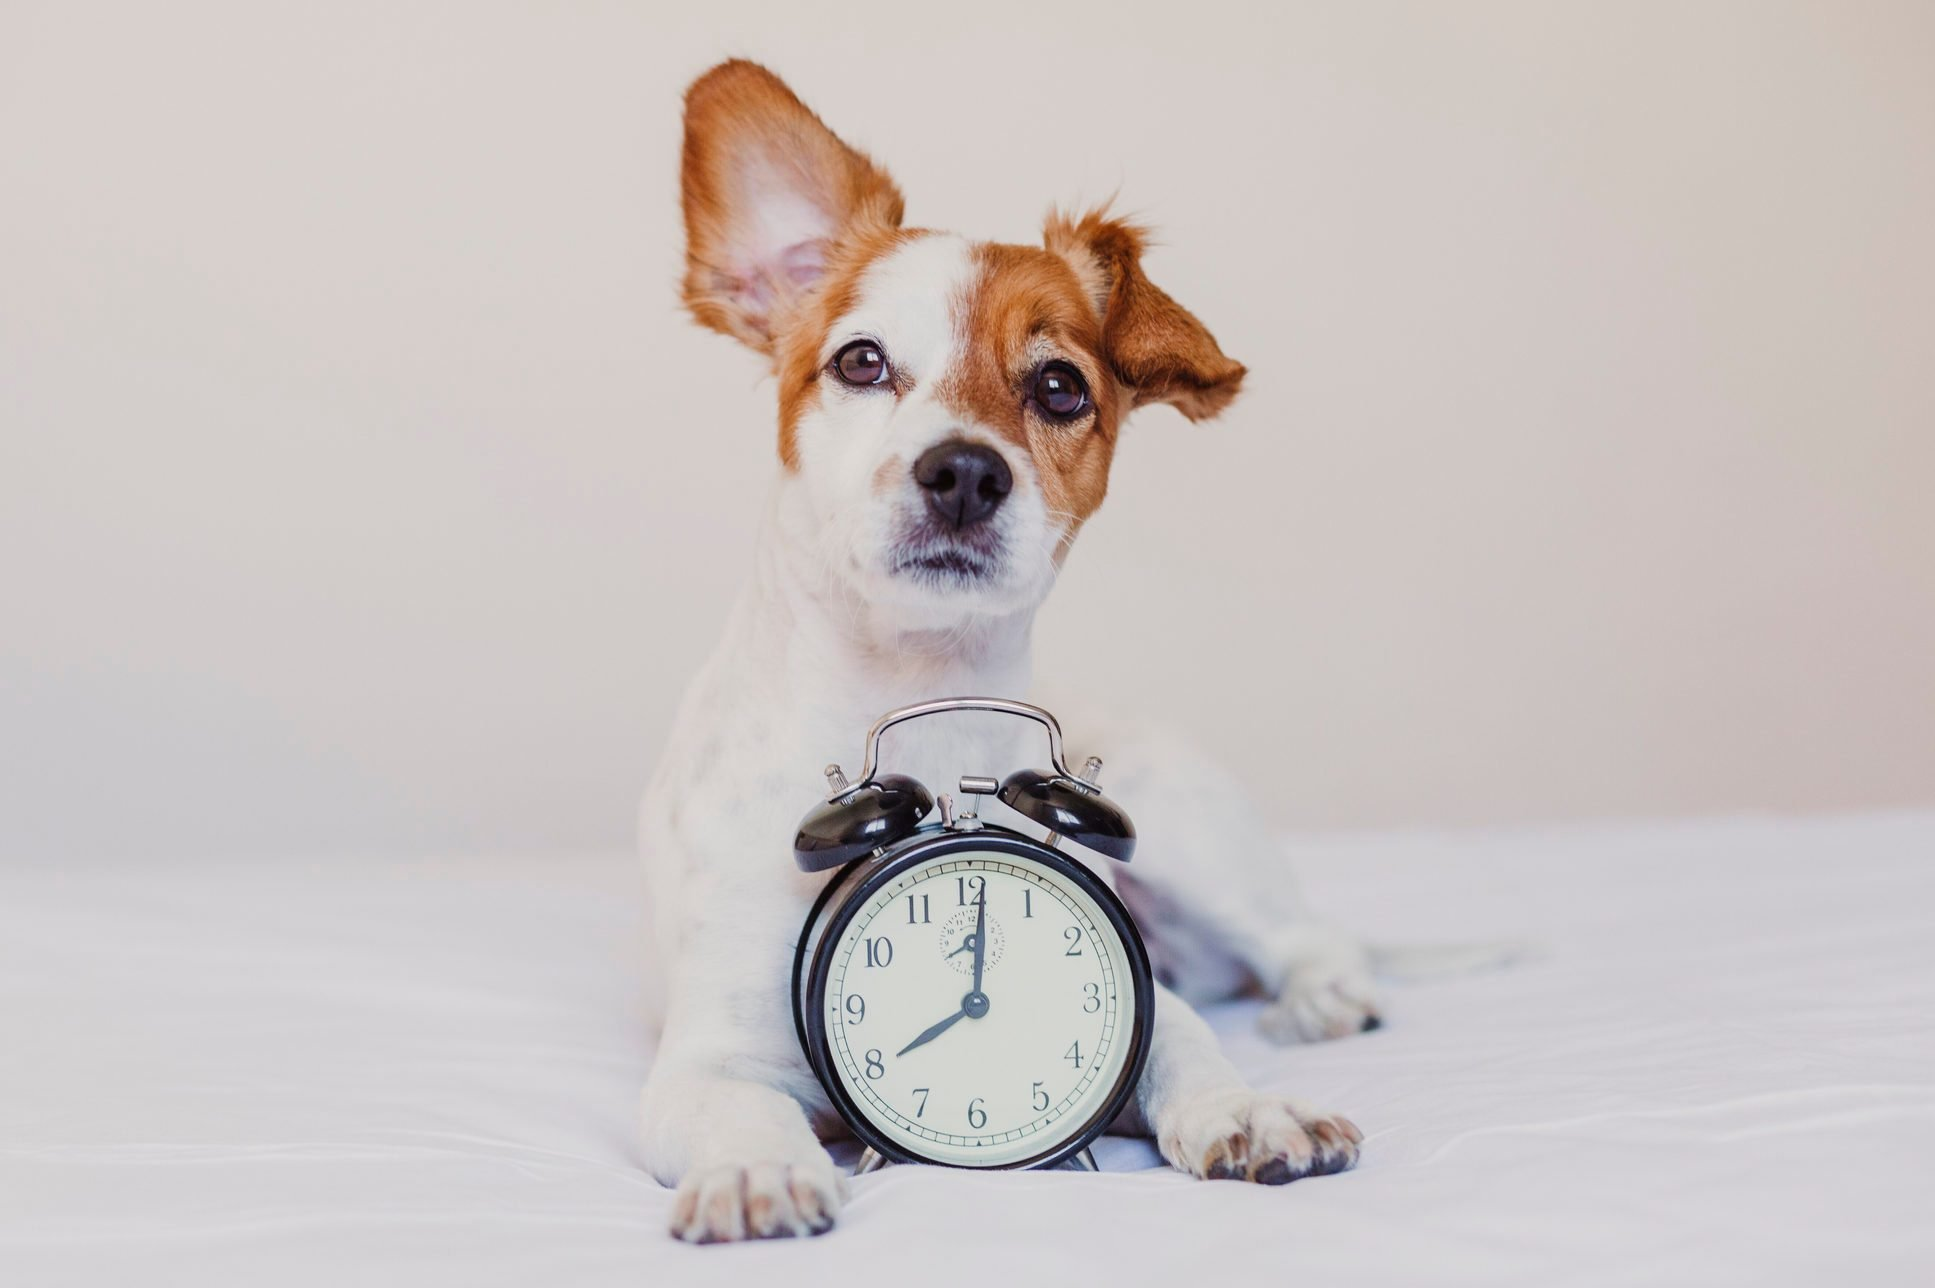 cute dog lying on bed with an alarm clock set on 8 am. morning and wake up concept at home. Pets indoors, lifestyle